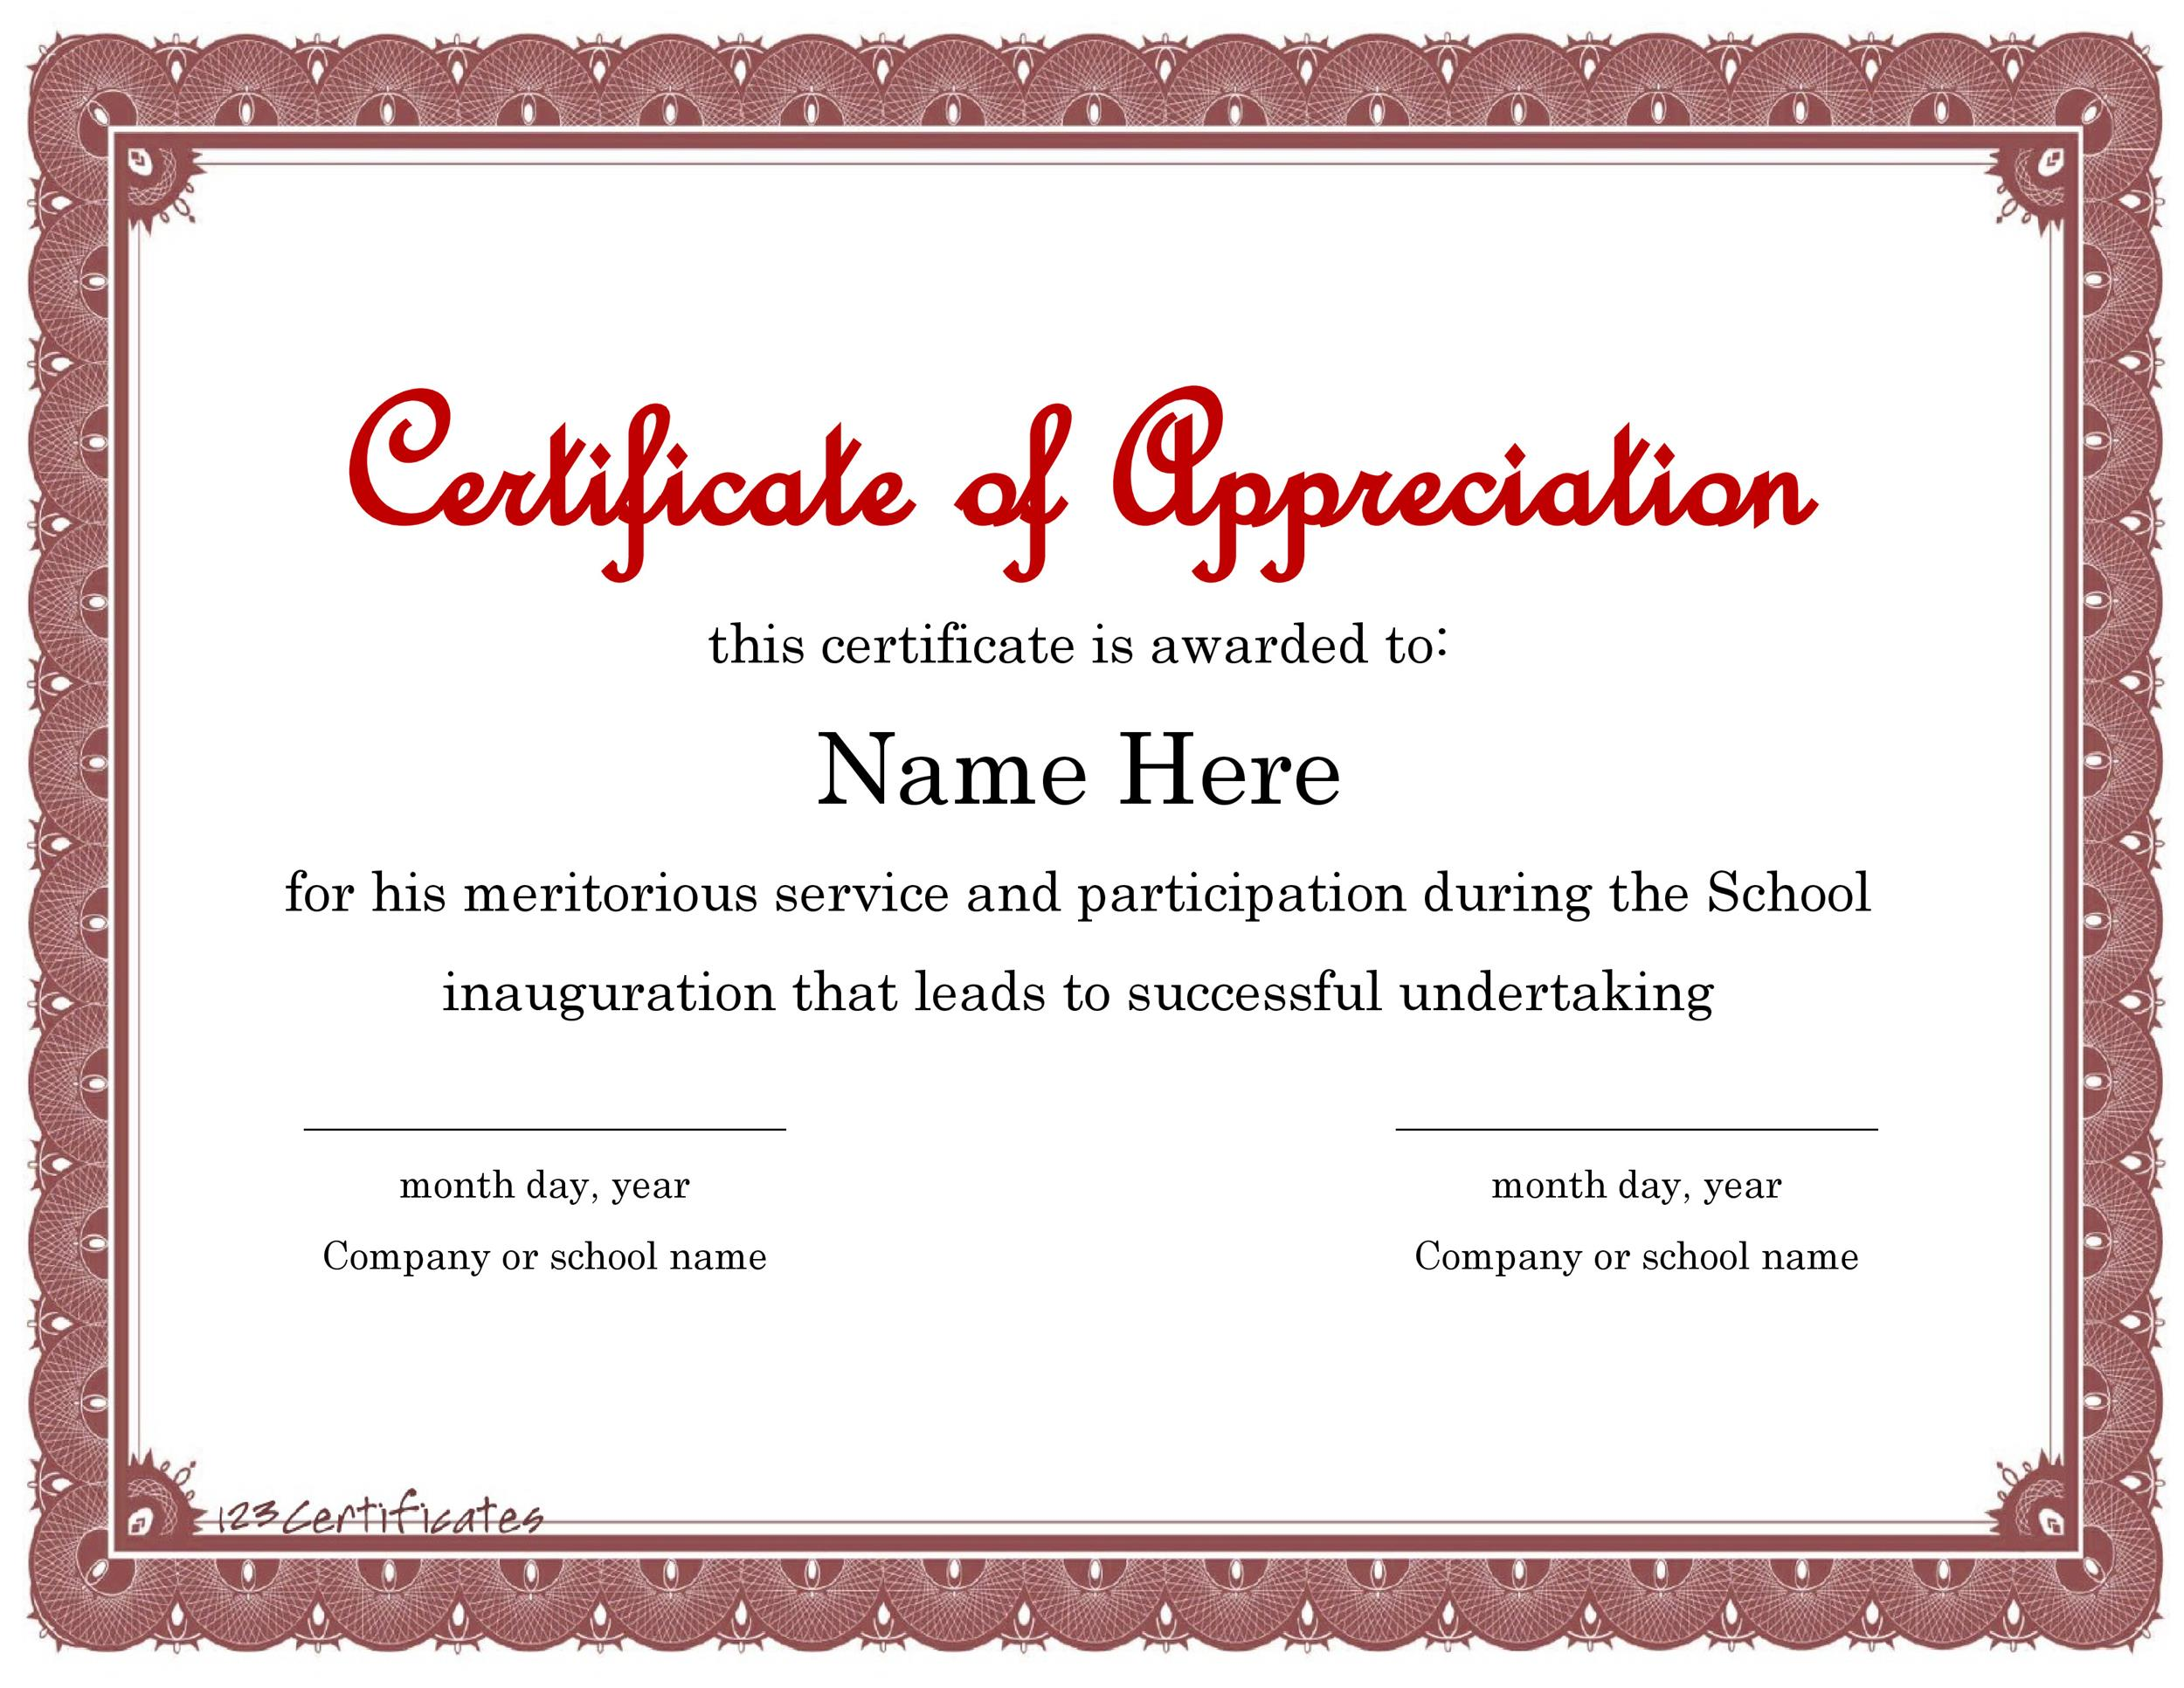 Attractive Printable Certificate Of Appreciation 01 On Certificates Of Appreciation Templates For Word